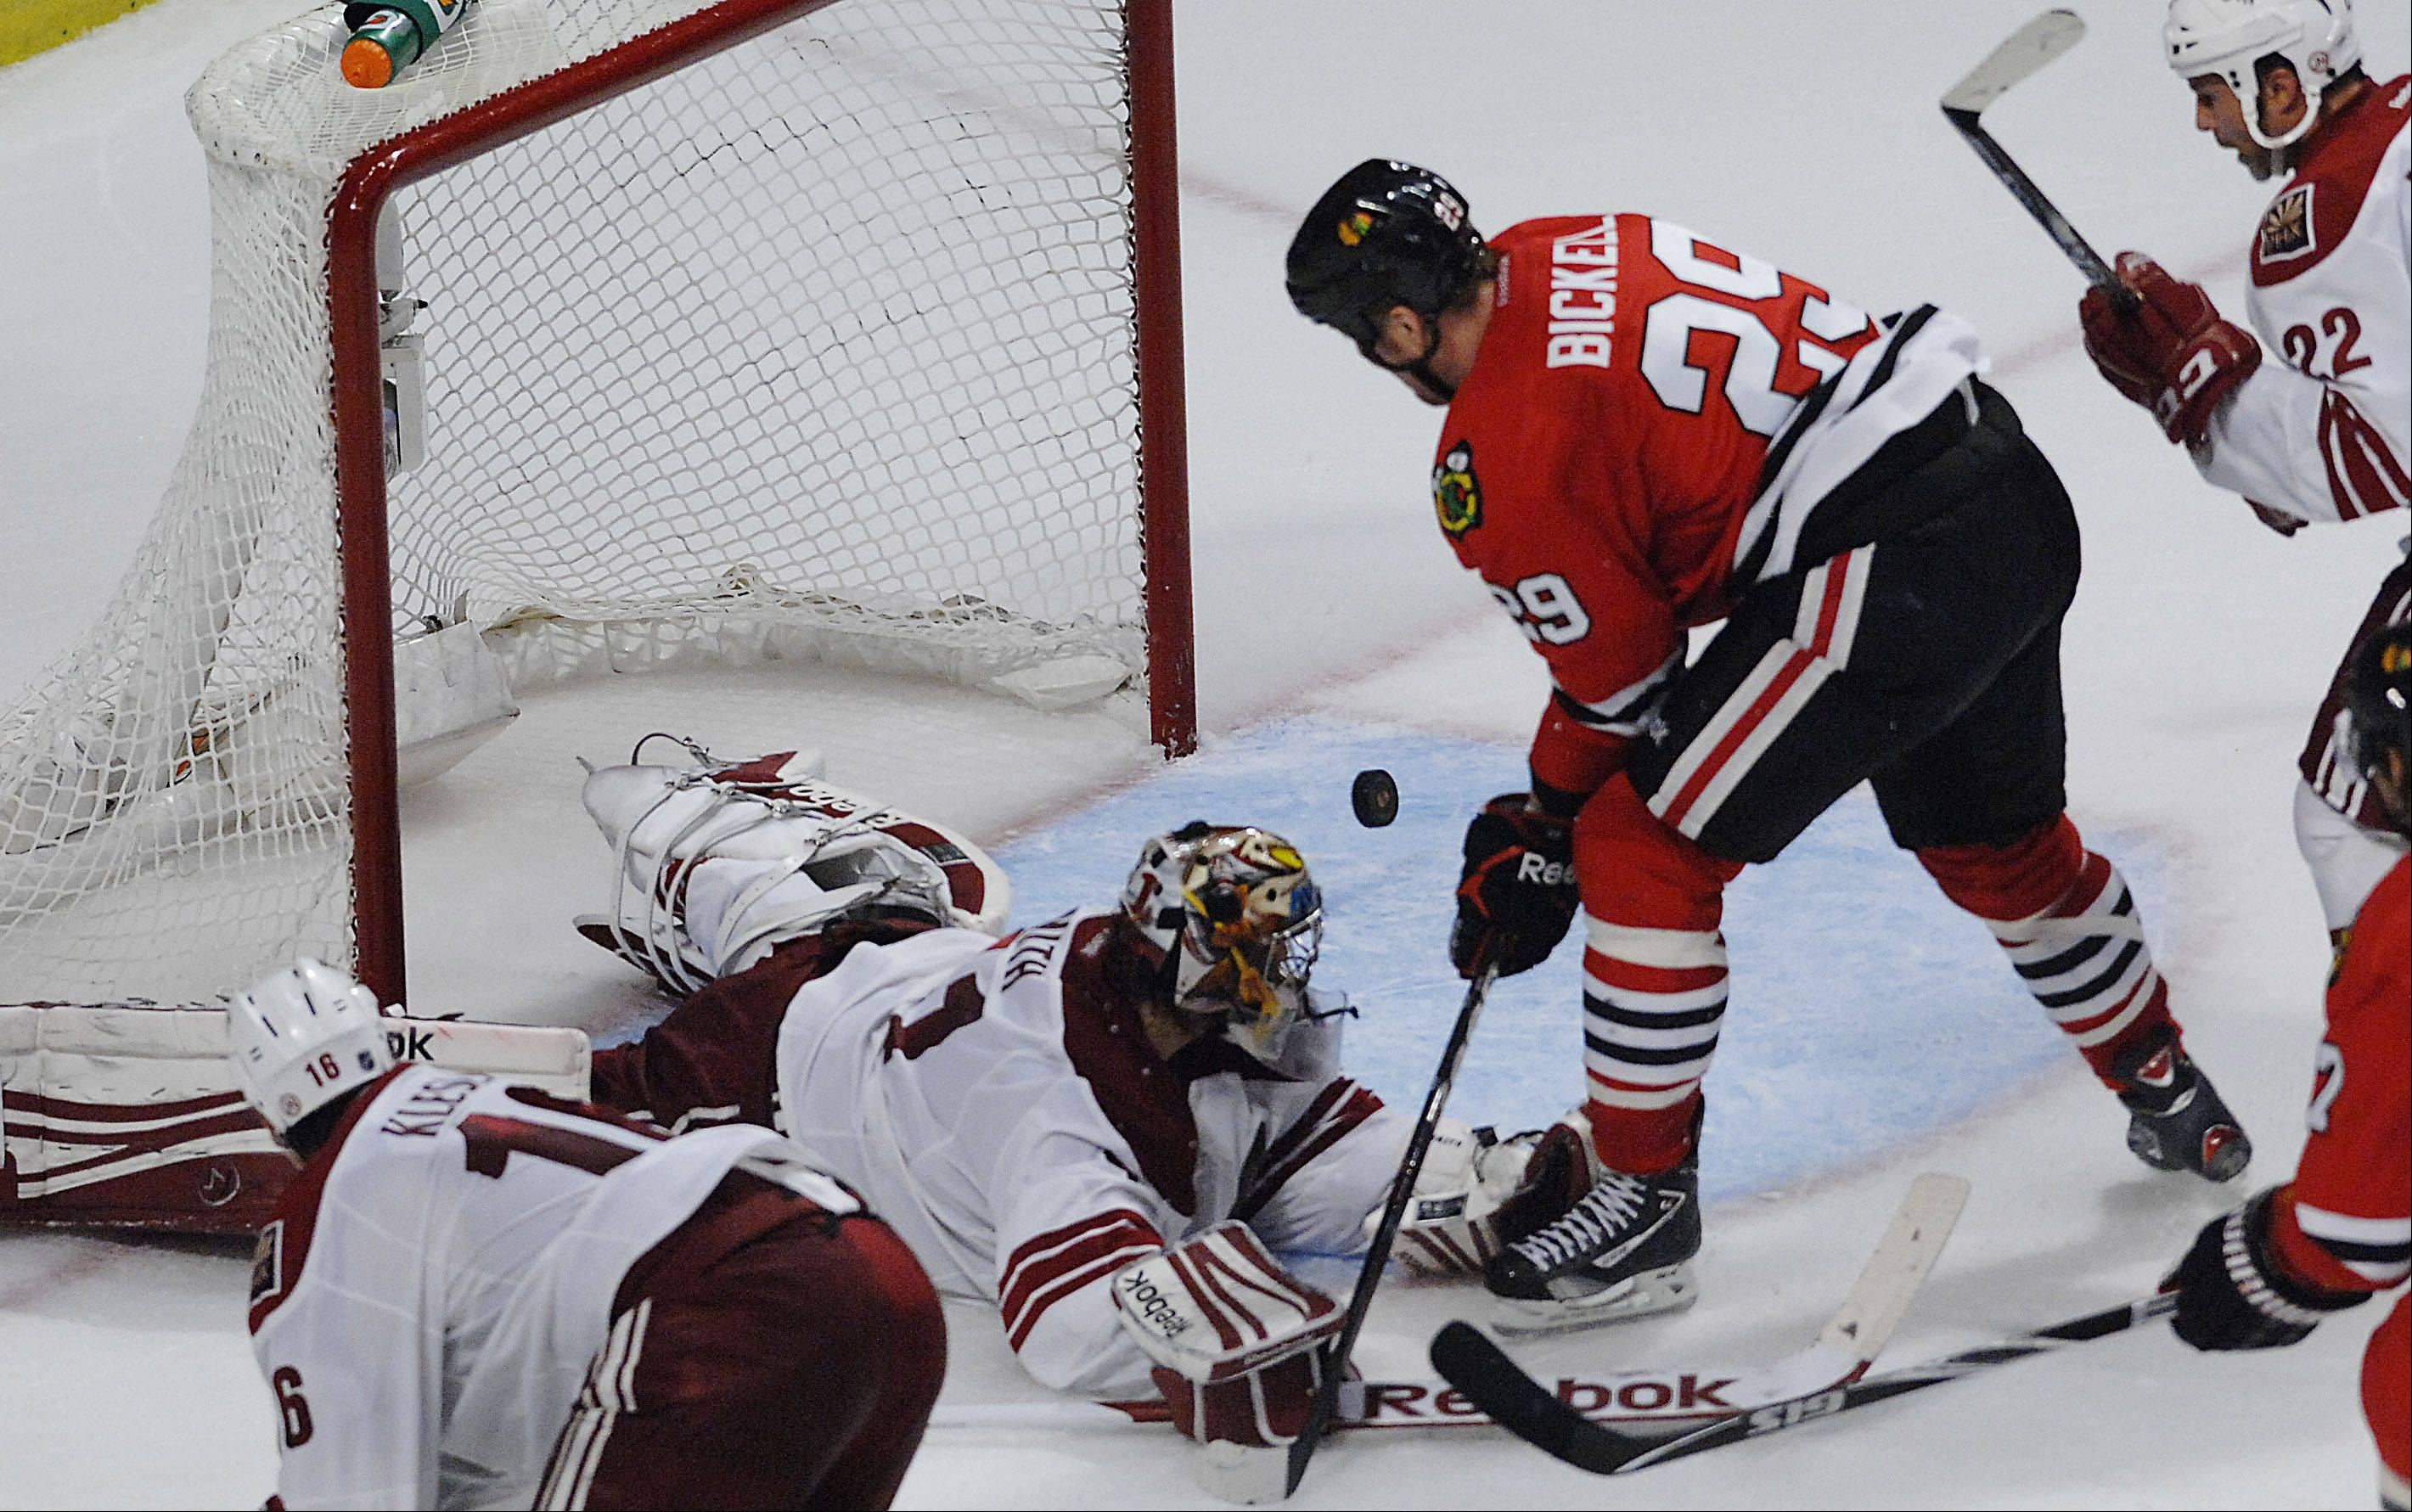 Chicago Blackhawks' left wing Bryan Bickell tries to contain a loose puck in front of the net.